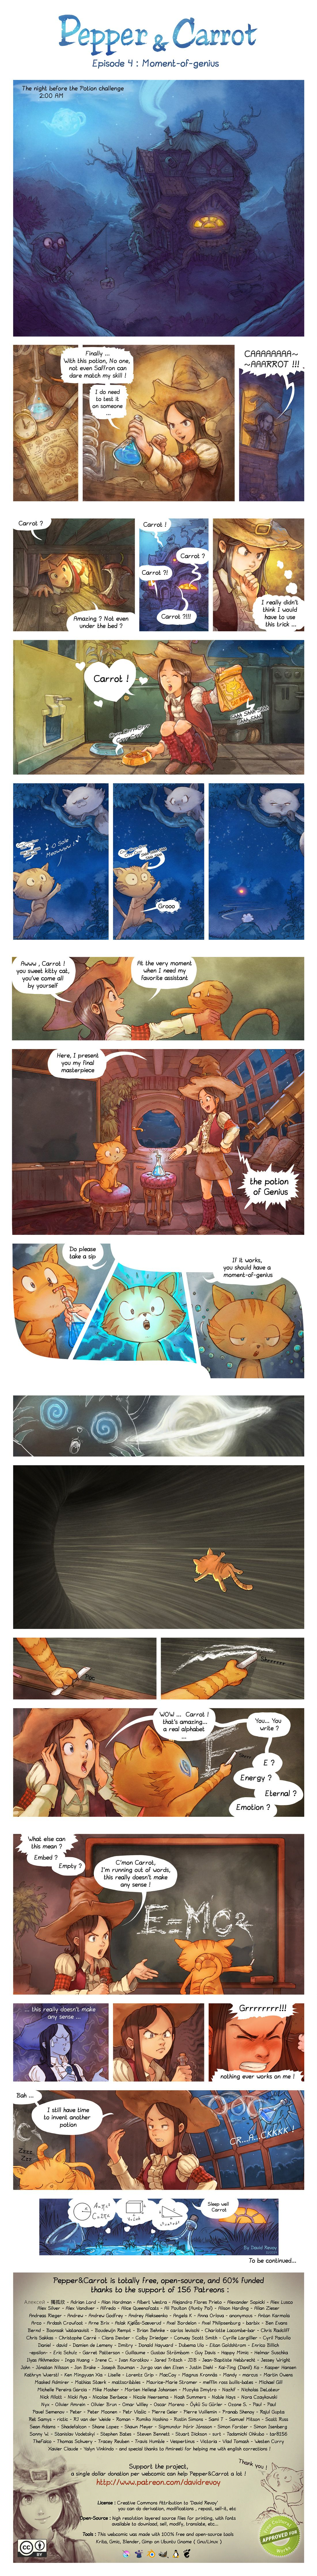 'Pepper and Carrot' Ep 4 : Moment-of-genius by Deevad.deviantart.com on @deviantART